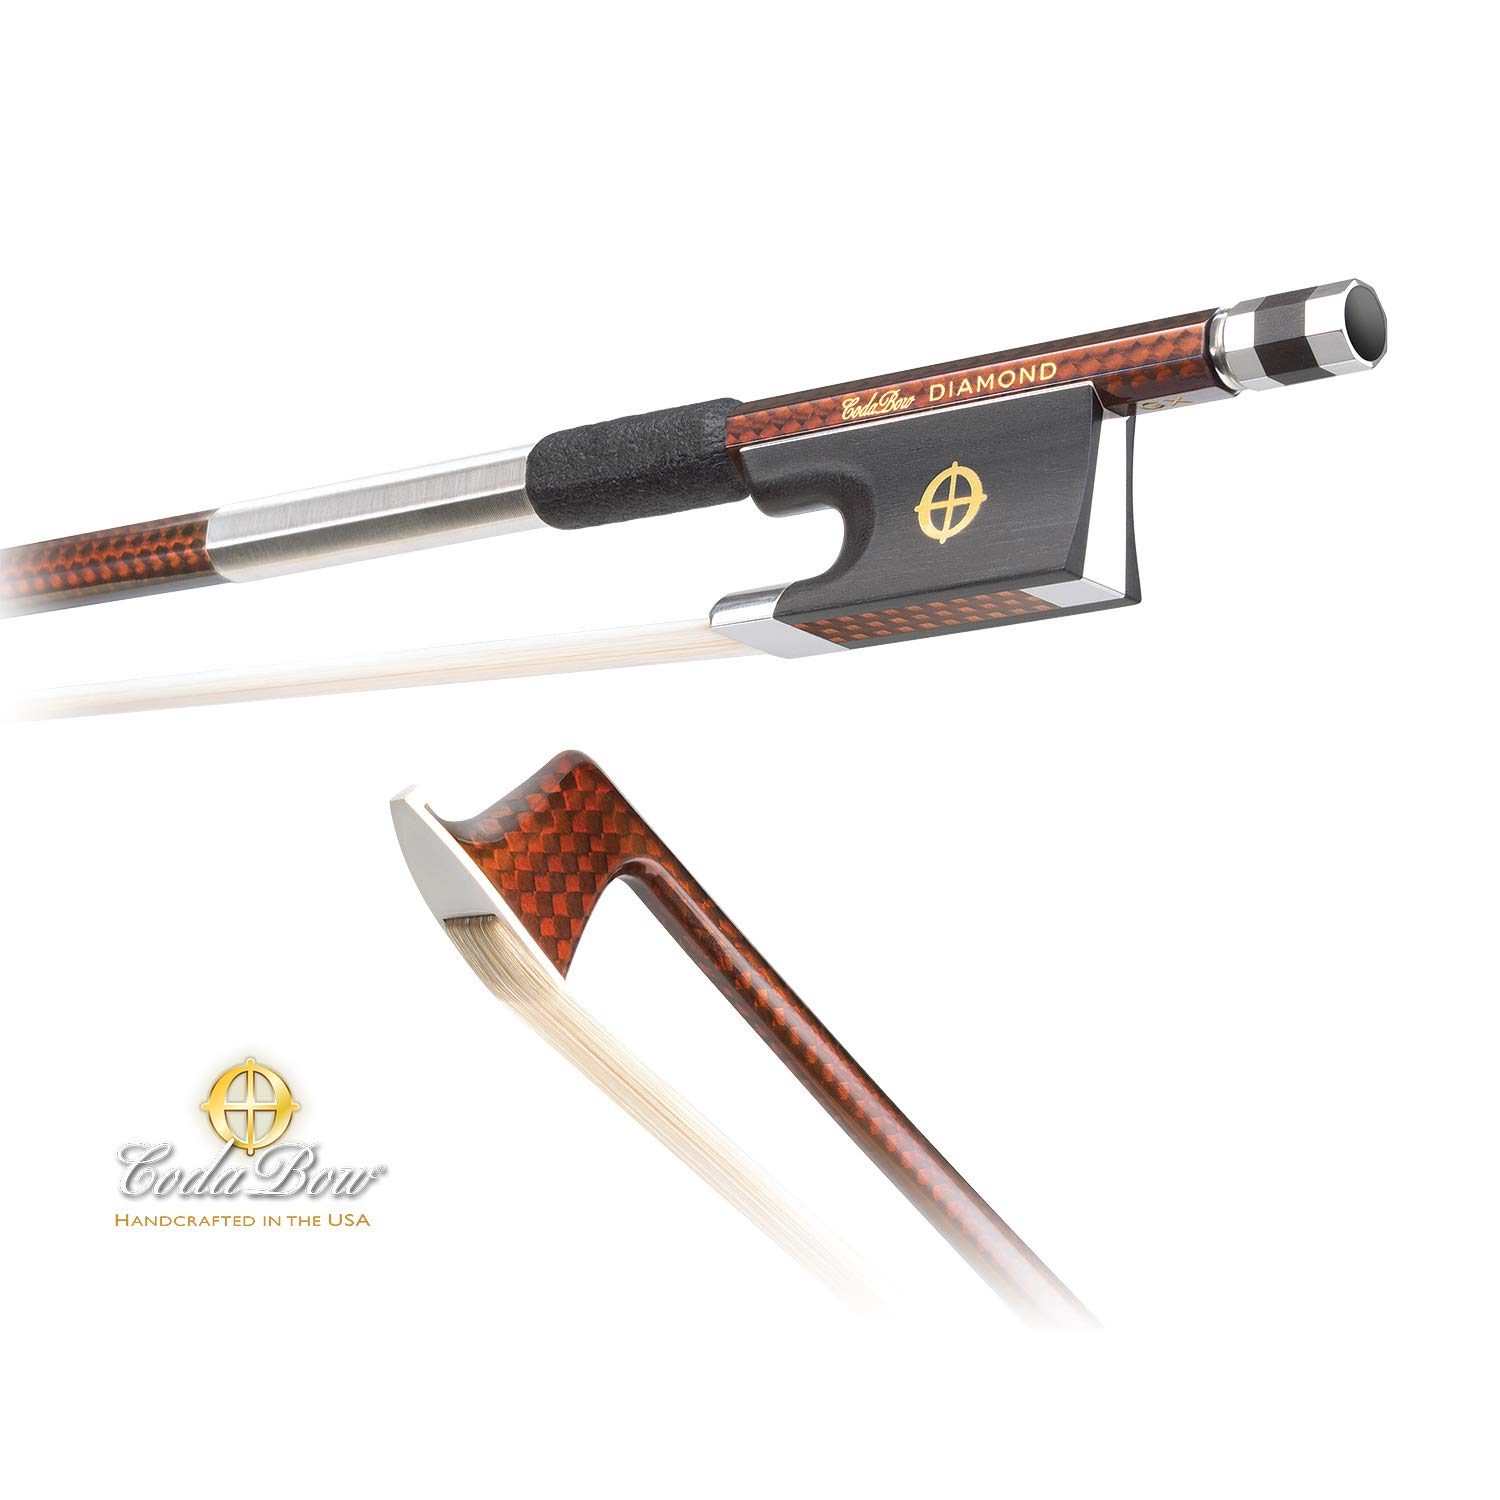 Top 15 Best Violin Bows Reviews in 2020 Should You Consider 6